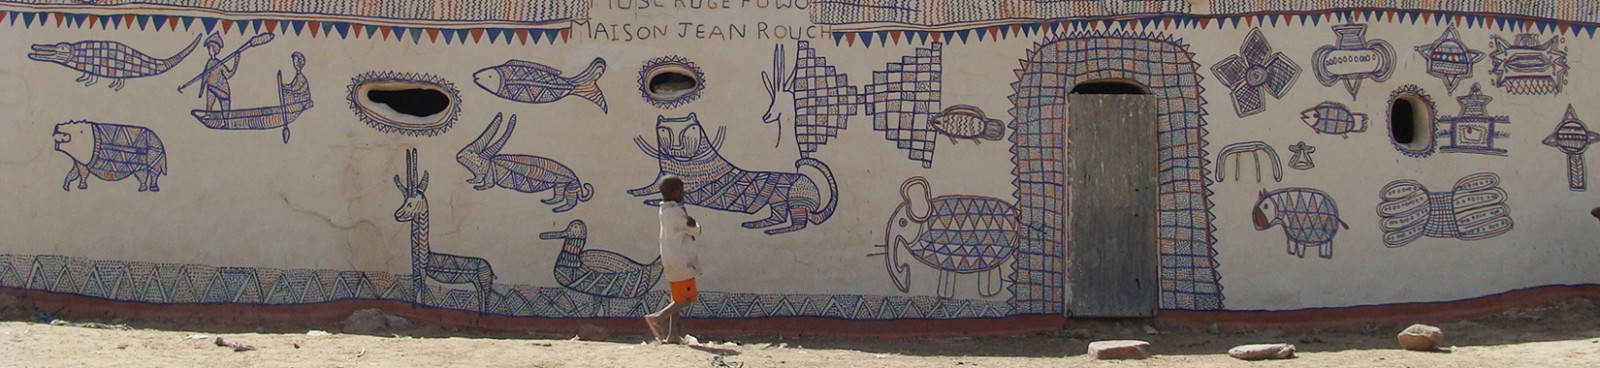 MUSE RUGE FUWO JEAN ROUCH. MAISON JEAN ROUCH